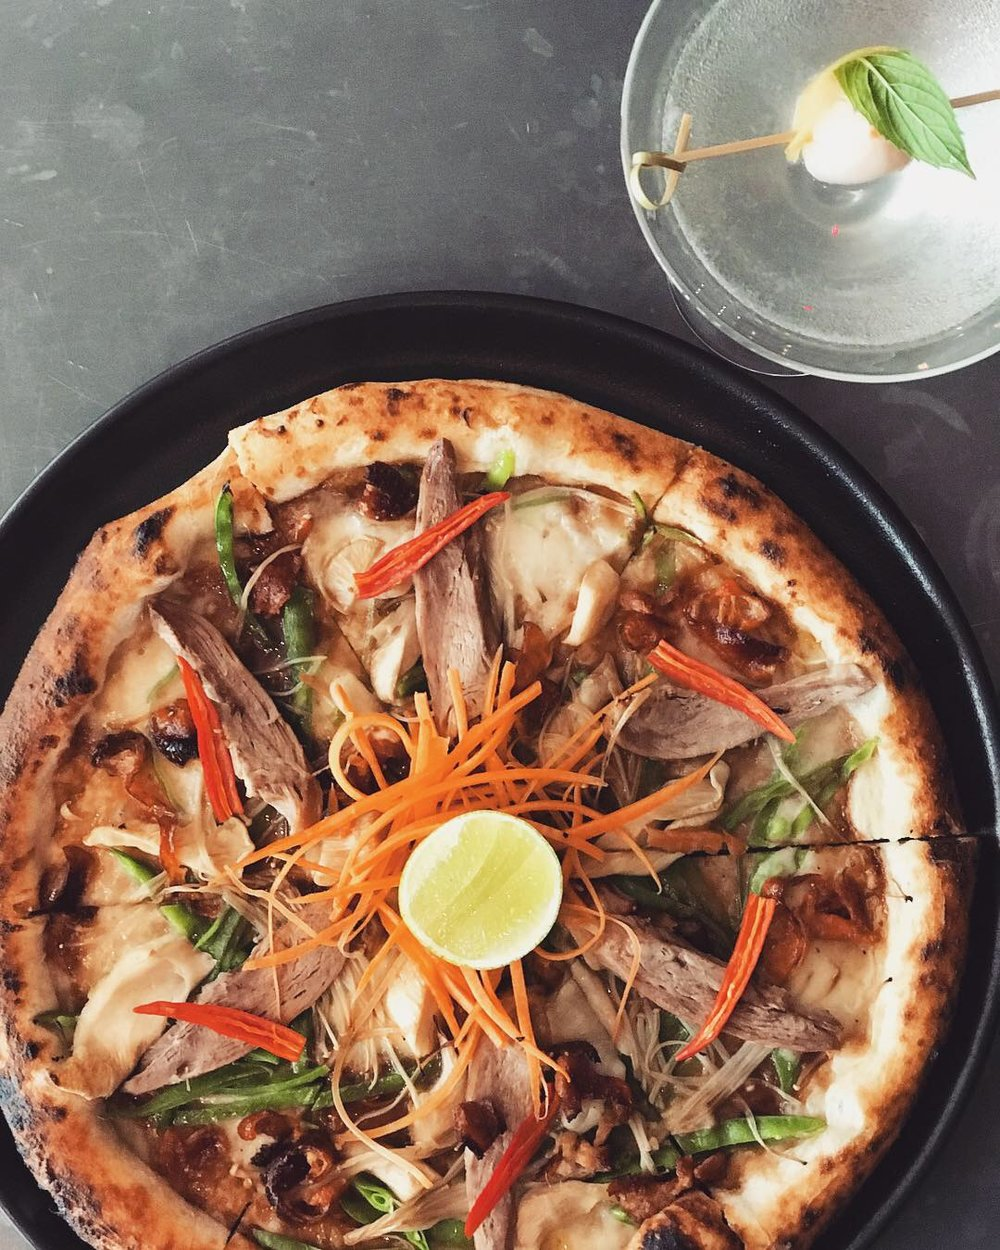 5-13 February - Our Shanghai Pizza marries a pasture fed, 4-hour braised Maryland duck, oyster and enokitake mushrooms, snow peas, chilli, Fior di Latte mozzarella, and a delicious five-spice roasted plum purée base.Best served with our Lychee Martini 🍸 .This week only, in celebration of the Year of the Pig.